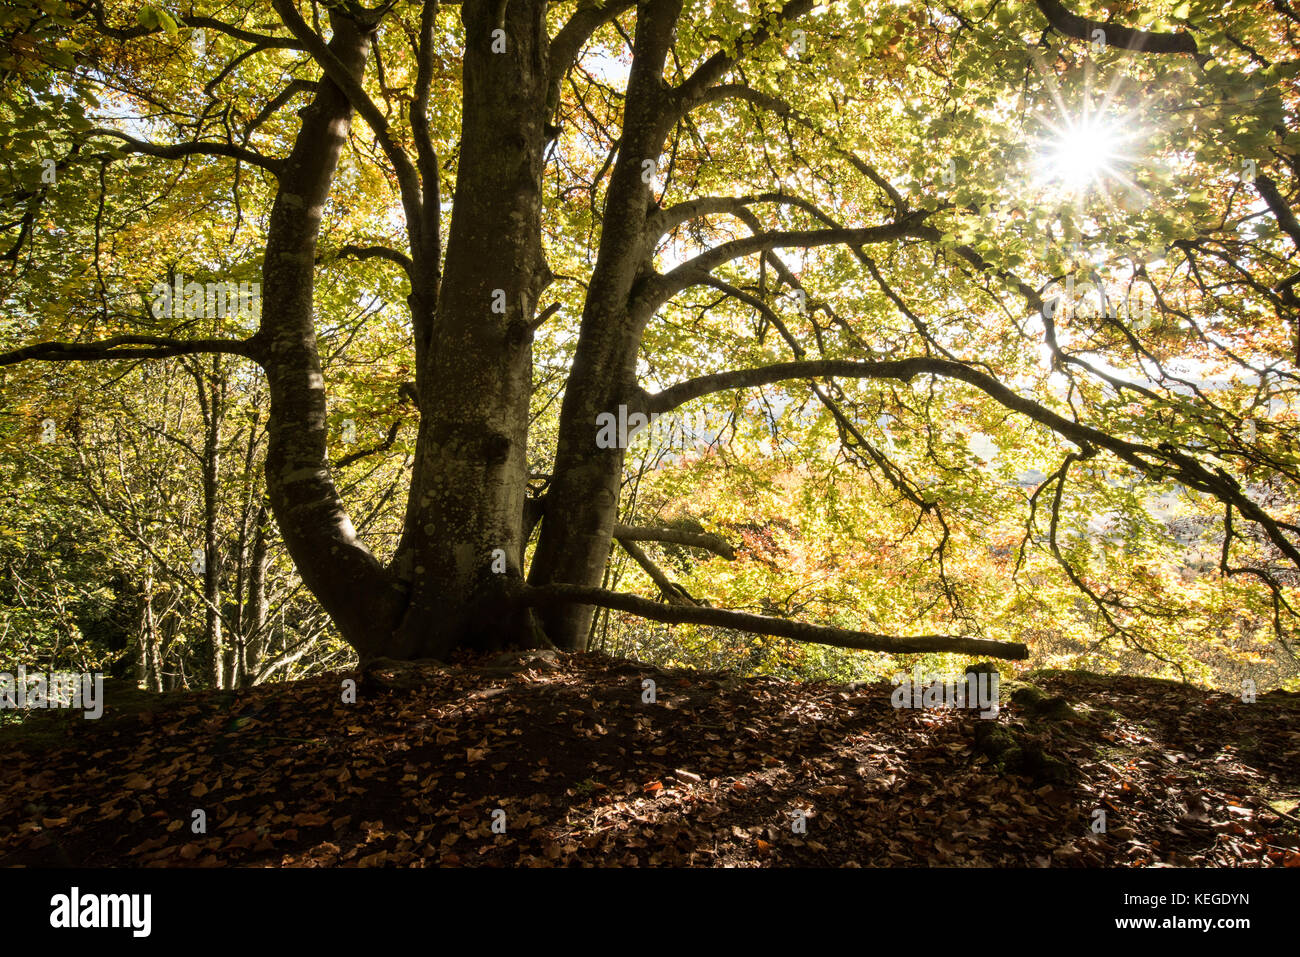 Autumnal beech tree with late afternoon sun, Scotland. - Stock Image